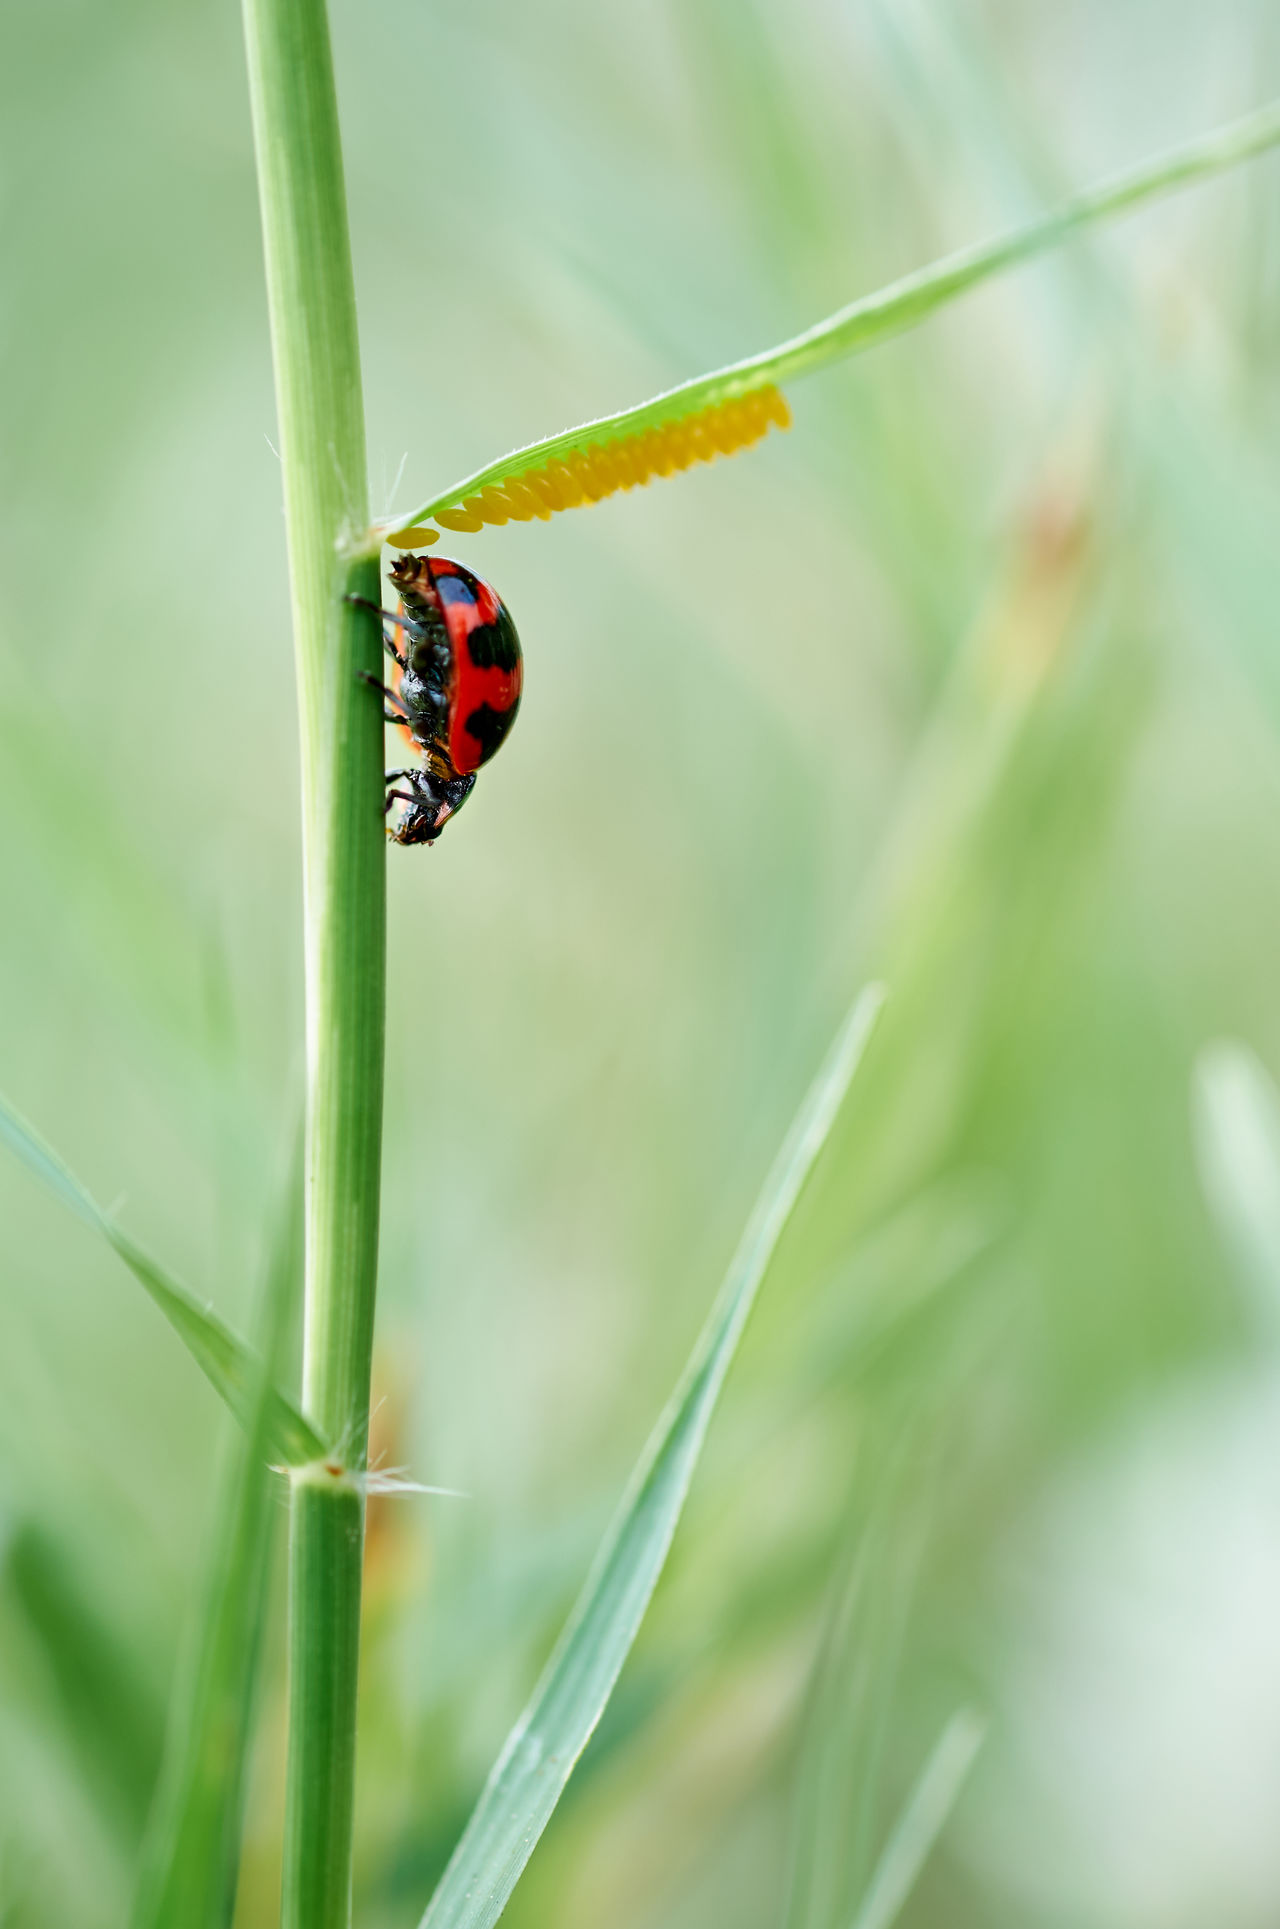 Animal Behavior Animal Themes Animal Wildlife Animals In The Wild Beauty In Nature Blade Of Grass Close-up Day Eggs Focus On Foreground Grass Green Color Growth Insect Ladybug Leaf Nature No People One Animal Outdoors Plant